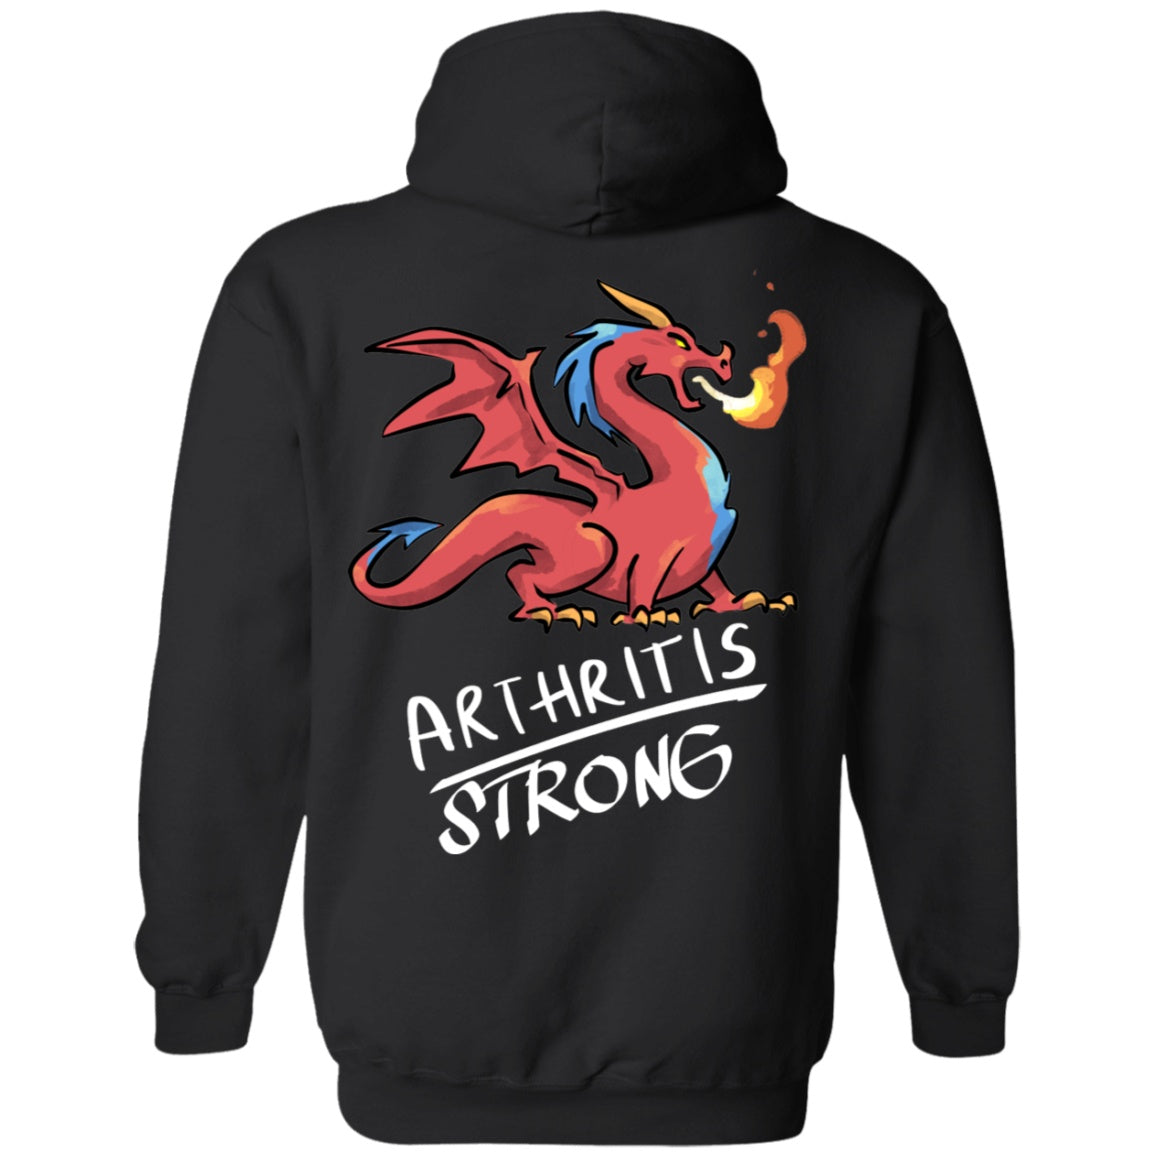 Arthritis Strong Dragon Pullover Hoodie 8 oz. - The Unchargeables